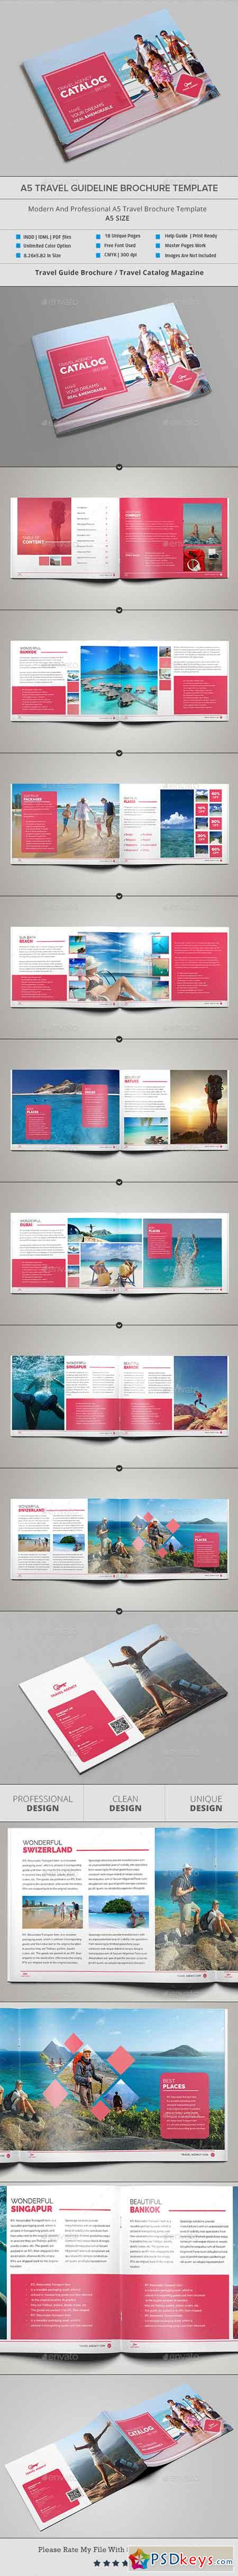 A5 Travel Guideline Brochure Catalog 20087606